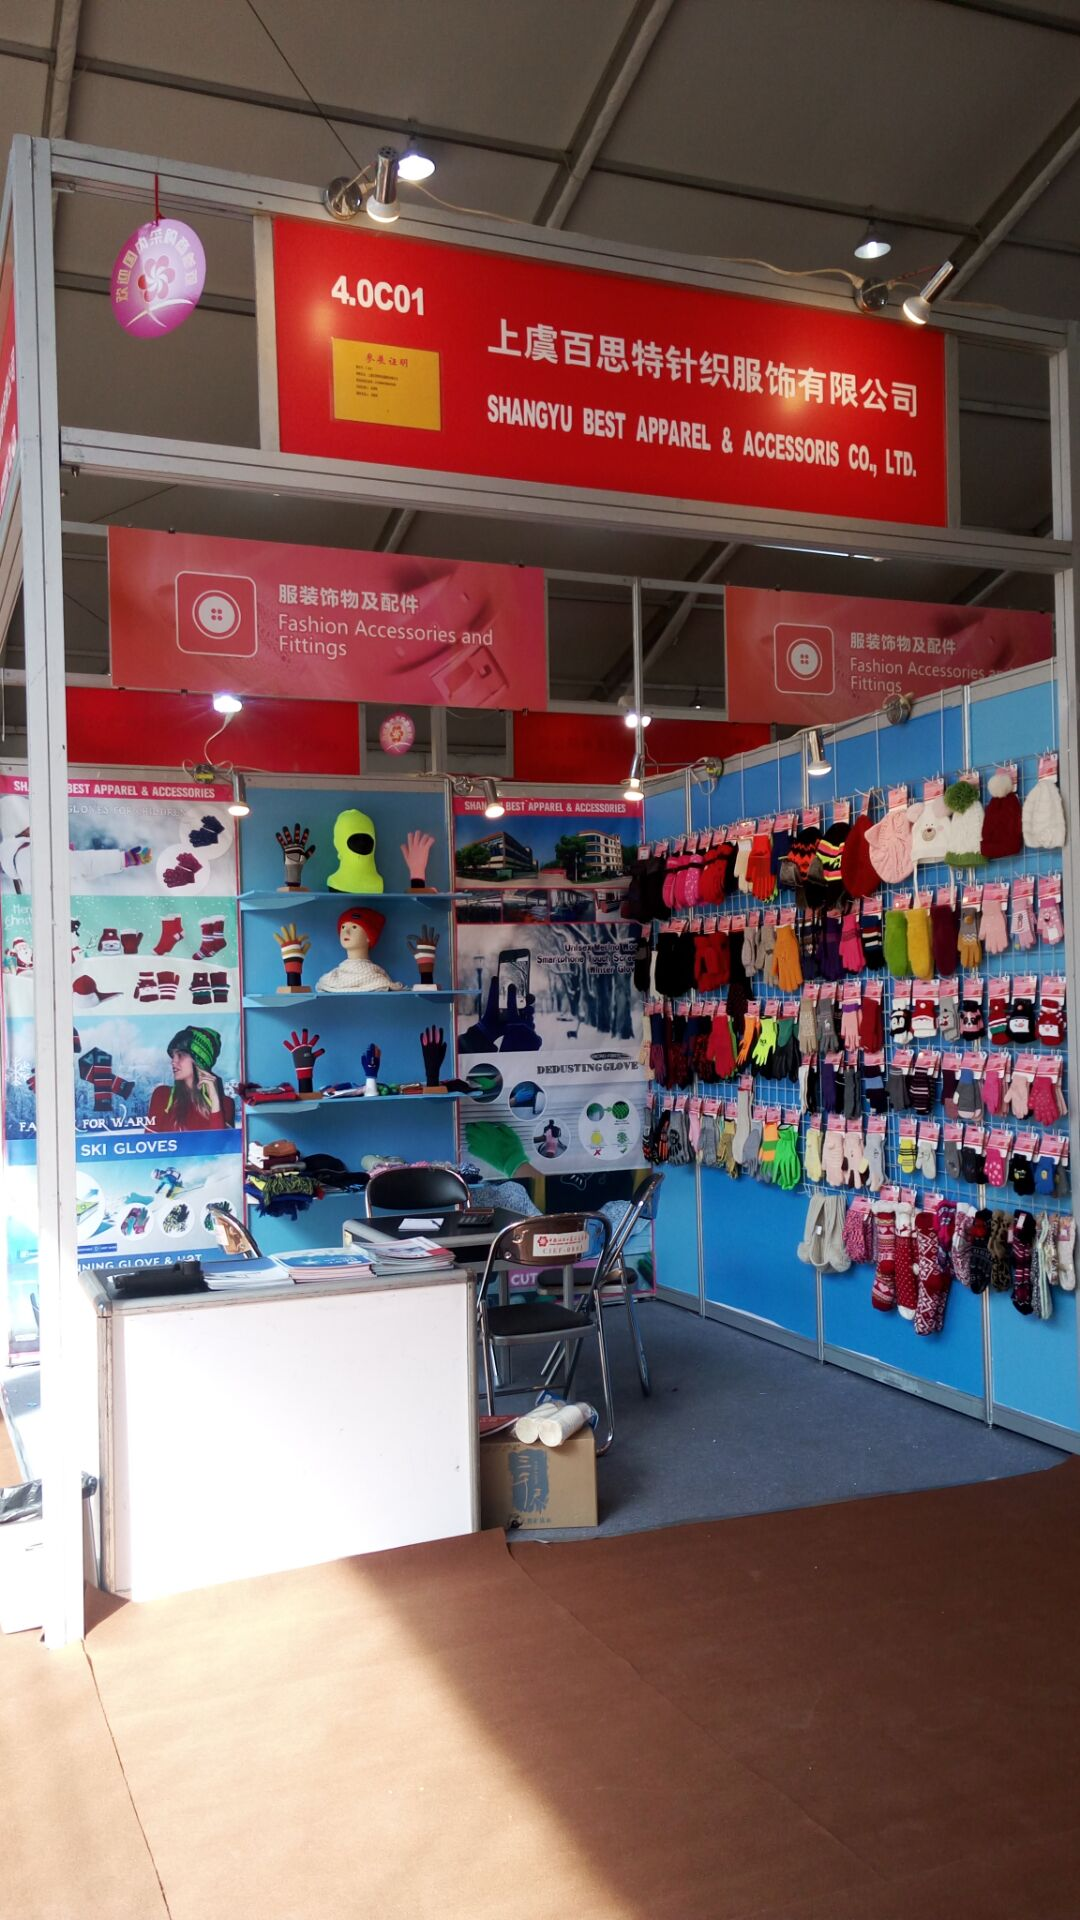 WE WILL PARTICIPATE IN THE 124TH CANTON FAIR